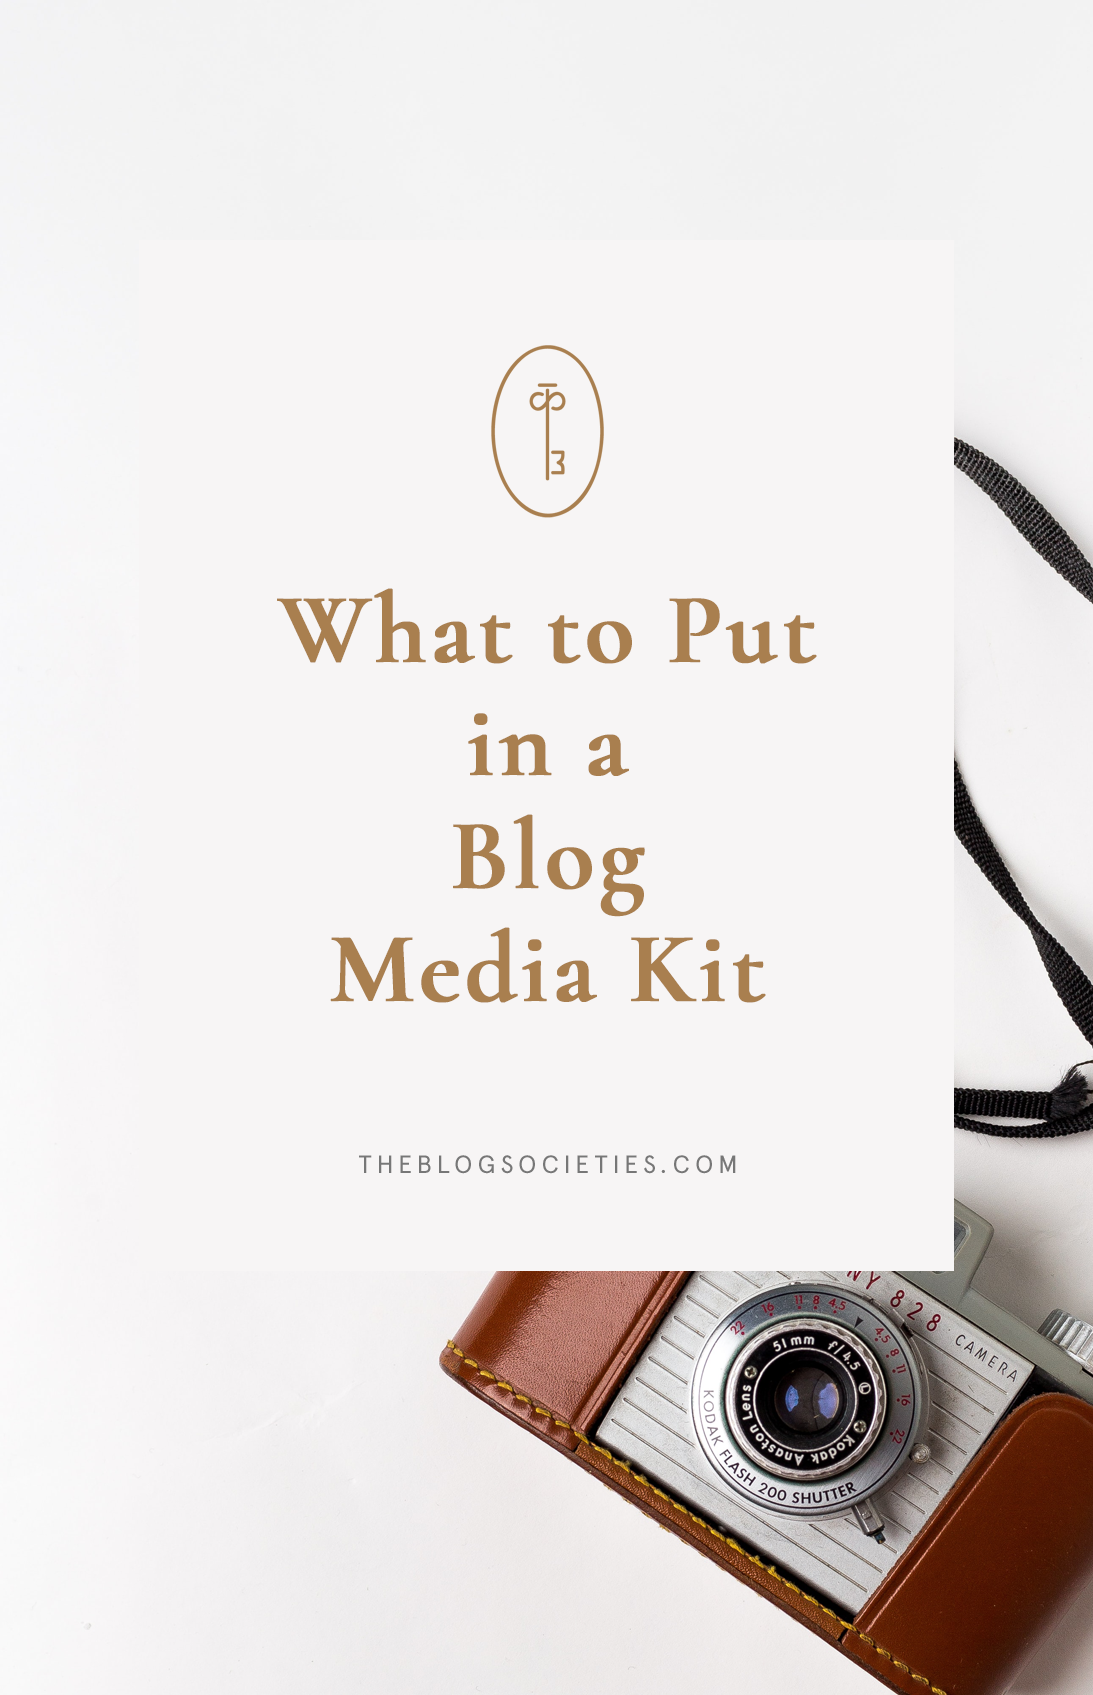 What to Put in a Blog Media Kit   The Blog Societies